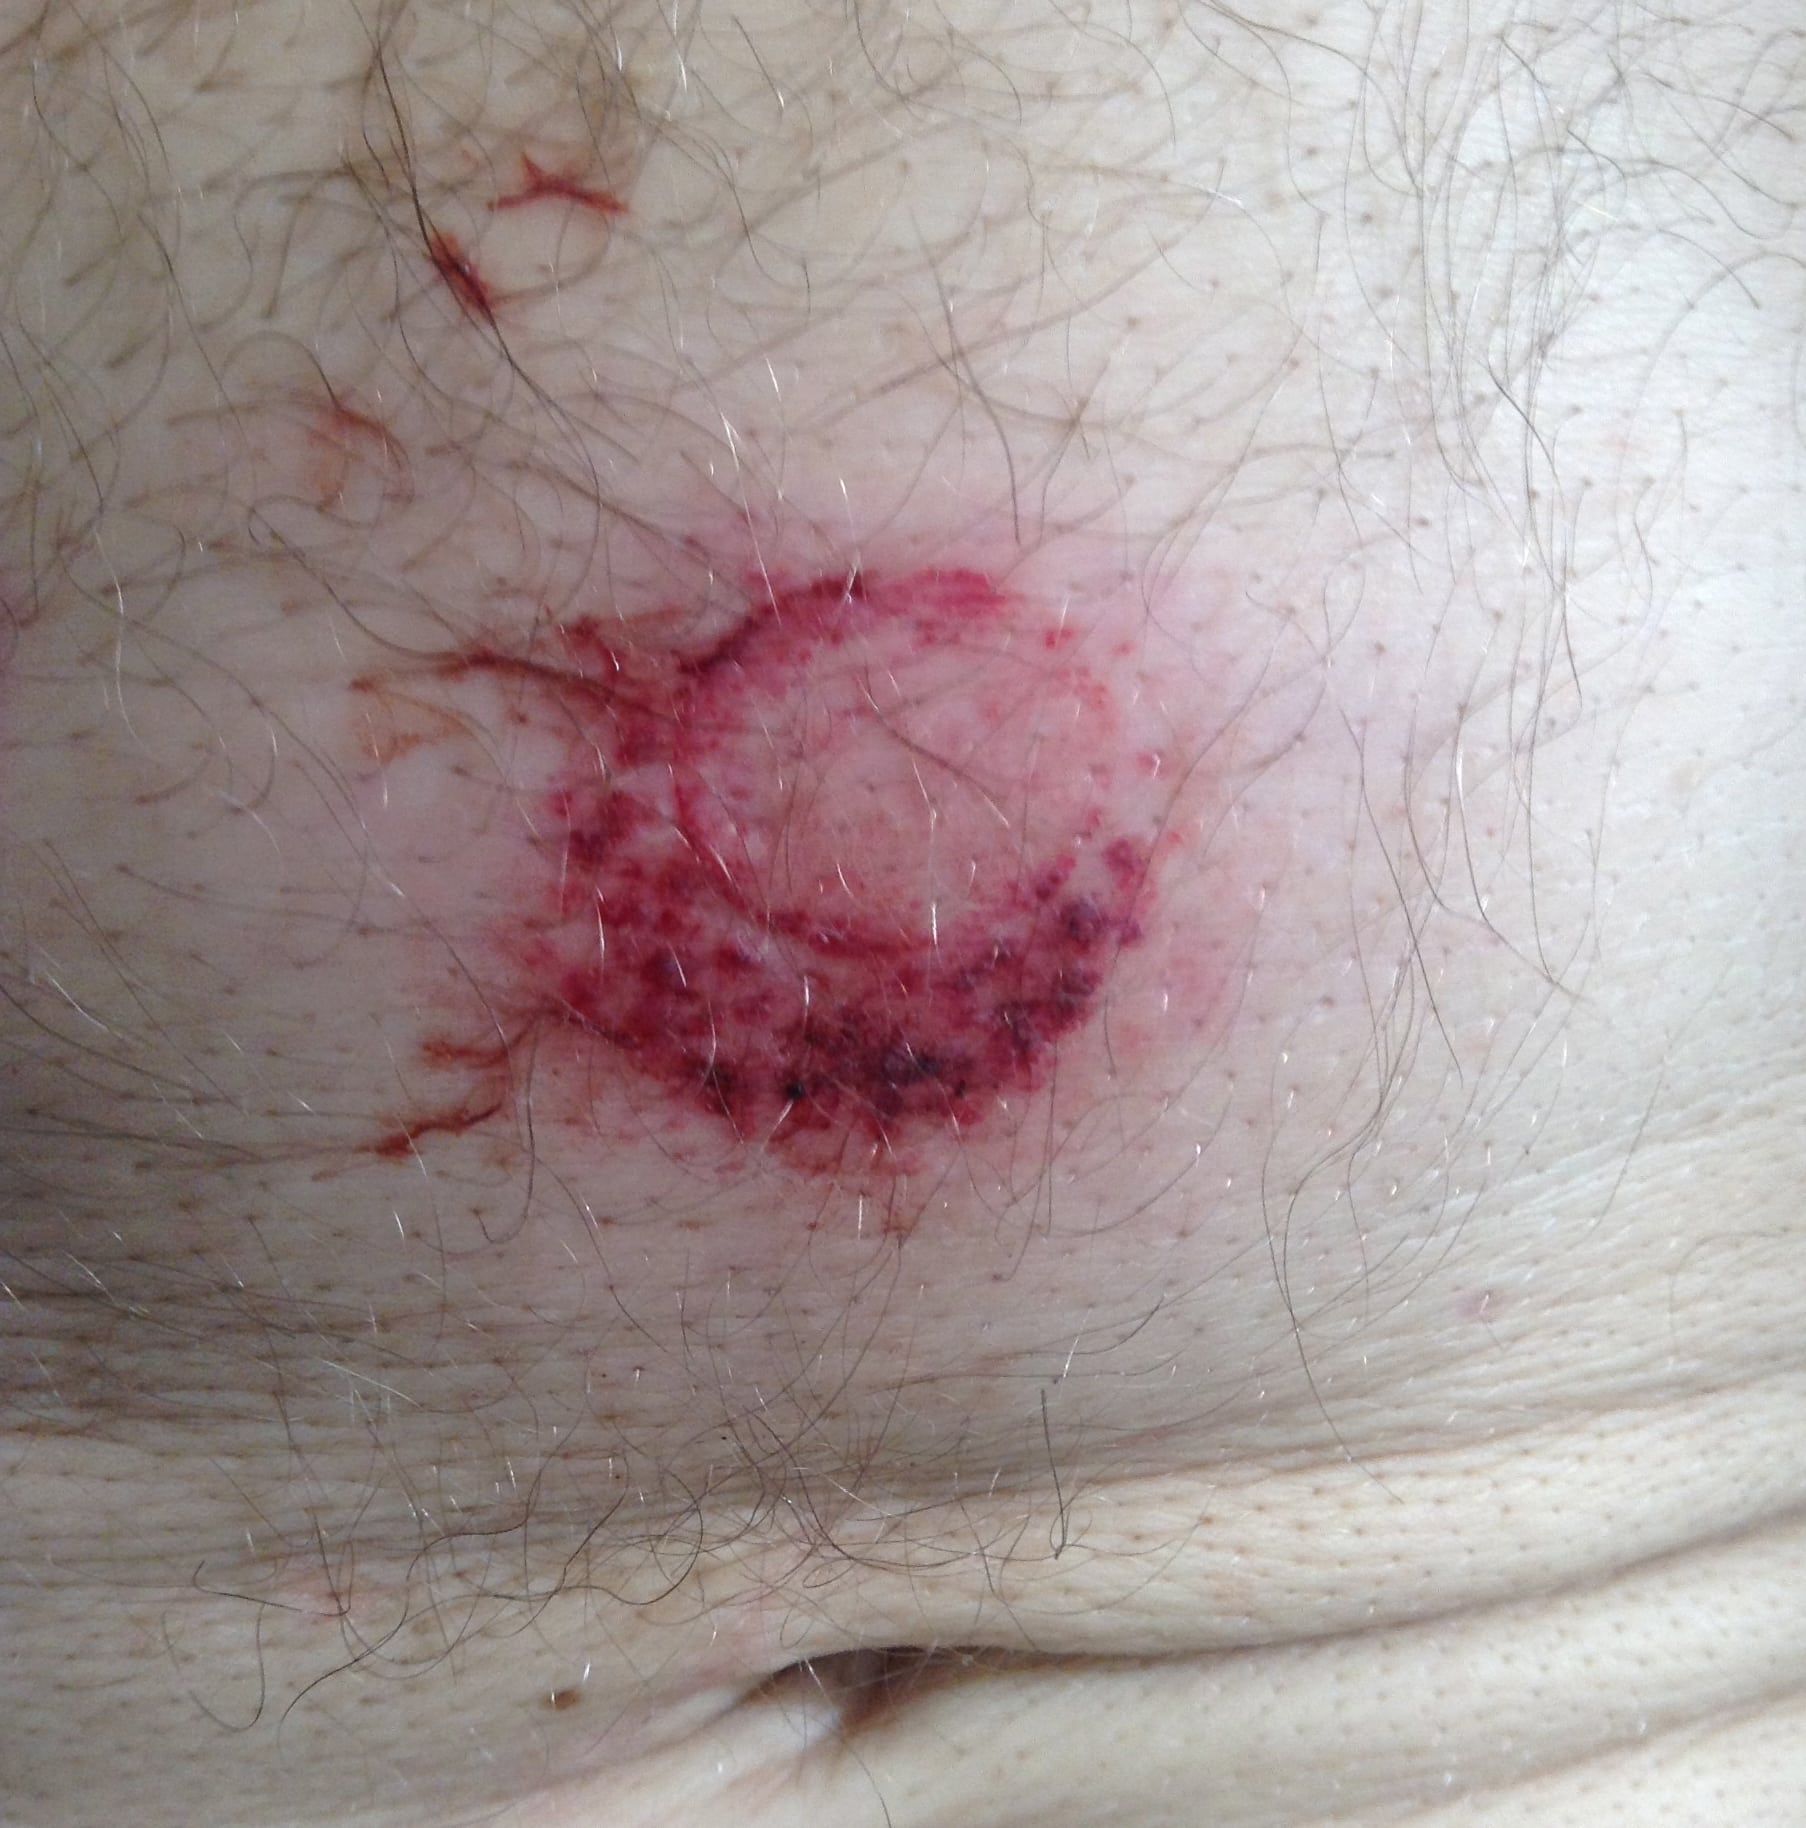 Splenic Laceration and Pulmonary Contusion Injury From Bean Bag Weapon